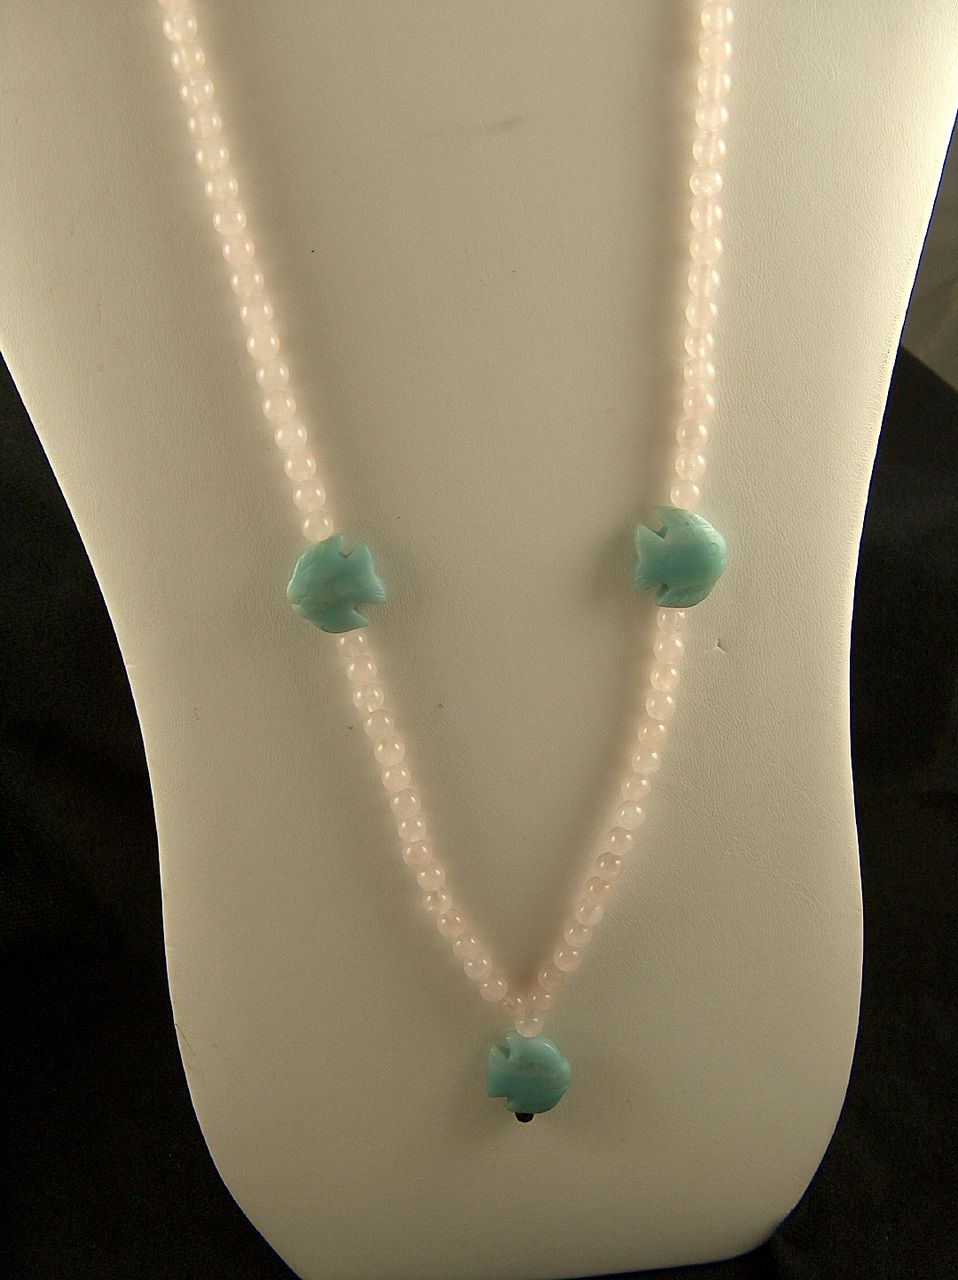 Vintage Stunning Rose Quartz Beads and Carved Amazonite Fish Necklace